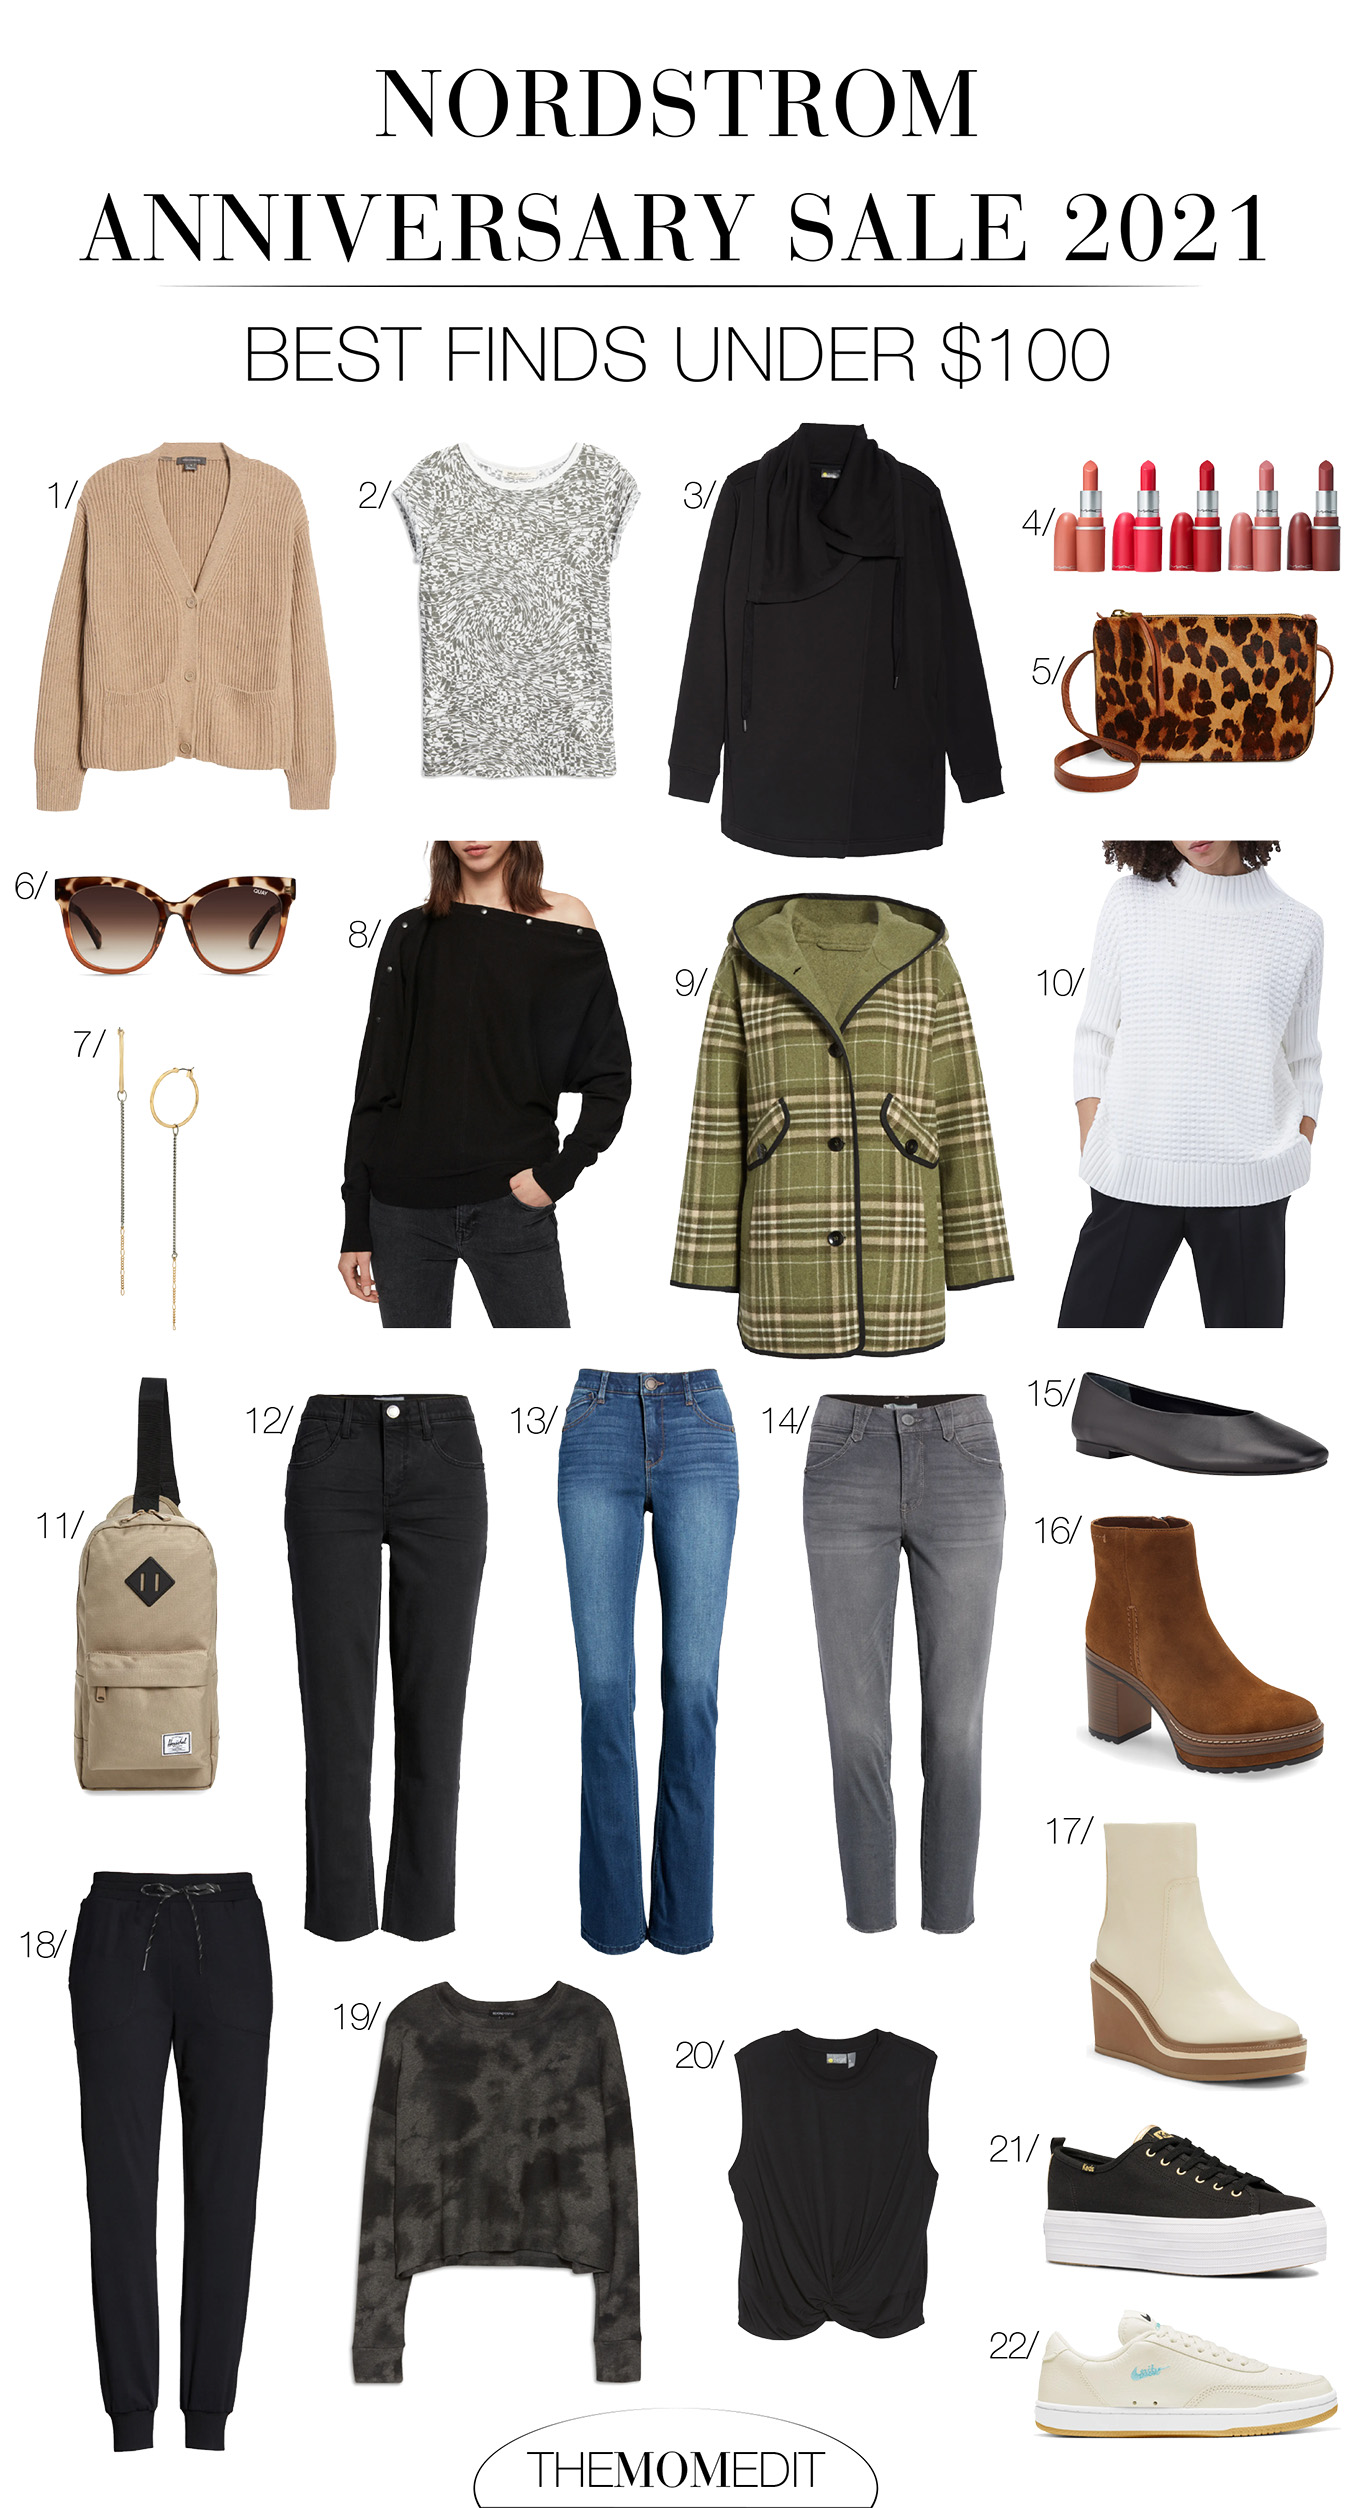 Many of the most exciting pieces in NSale are under $100. GREAT denim under $50, the COZIEST sweatshirt-wrap under $60, my fav joggers under $40, & the TME fav basic tee under $13!